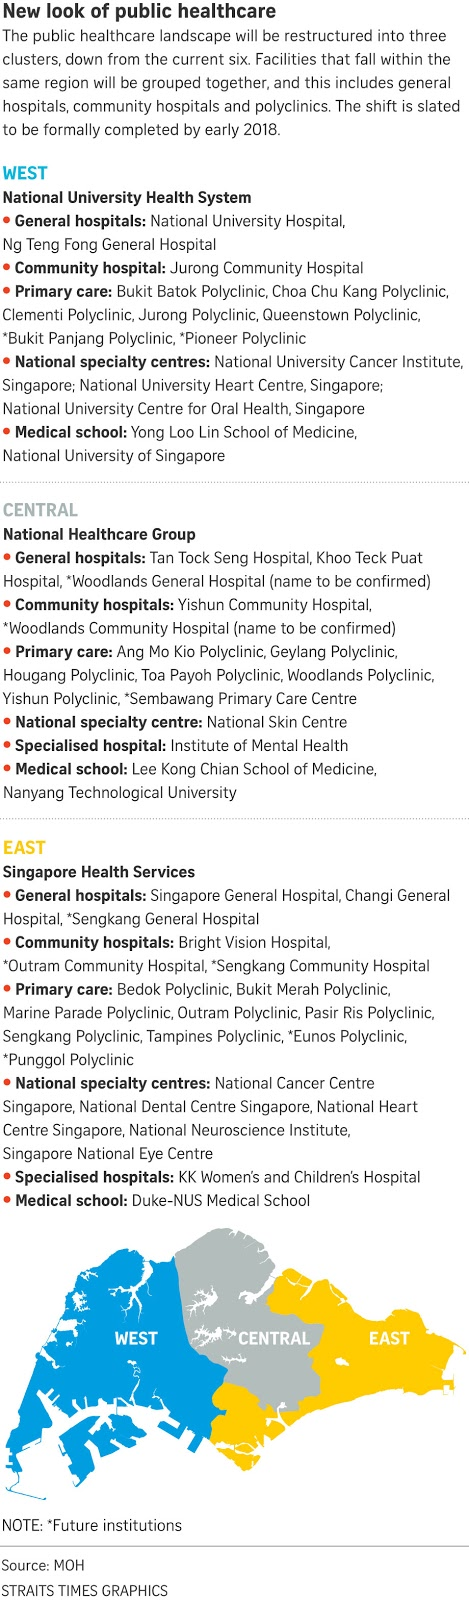 If Only Singaporeans Stopped to Think: Public healthcare